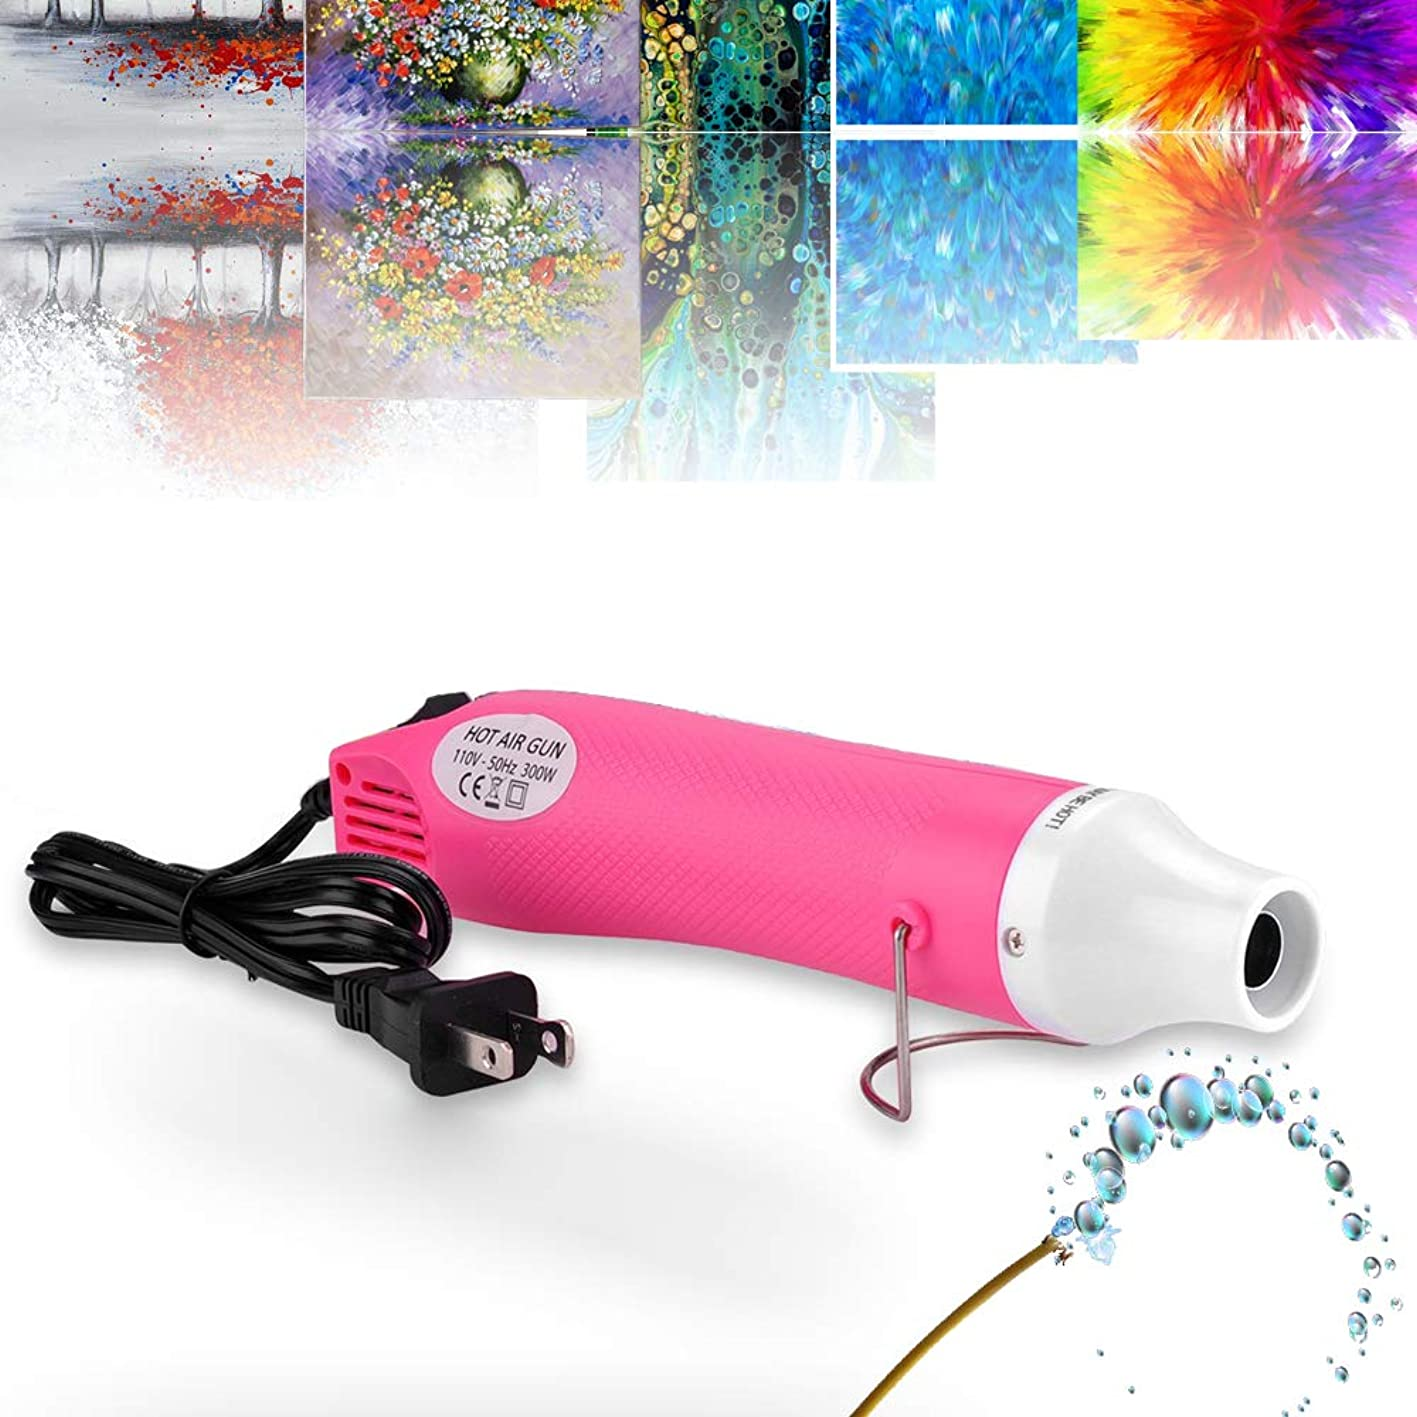 Epoxy Resin Bubble Remover, USLINSKY Bubble Buster Heat Gun with US Adapter Apply to Acrylic Painting Supplies, Quick Resin Bubble Free Tool for Crafts, Princess Pink kfxehpqcswg166